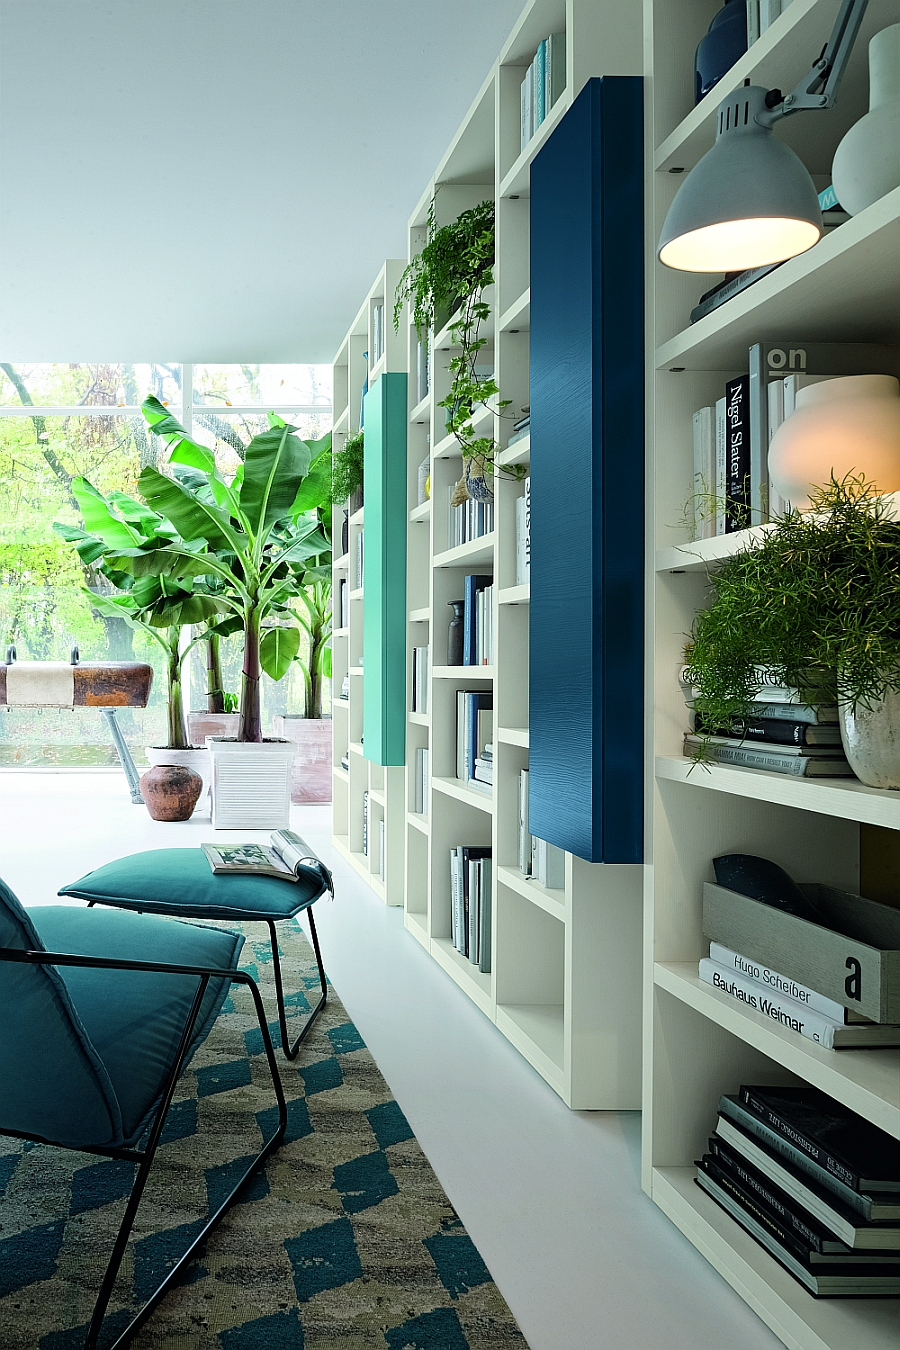 Design Wall Units For Living Room: Modern Modular Wall Units For Living Room